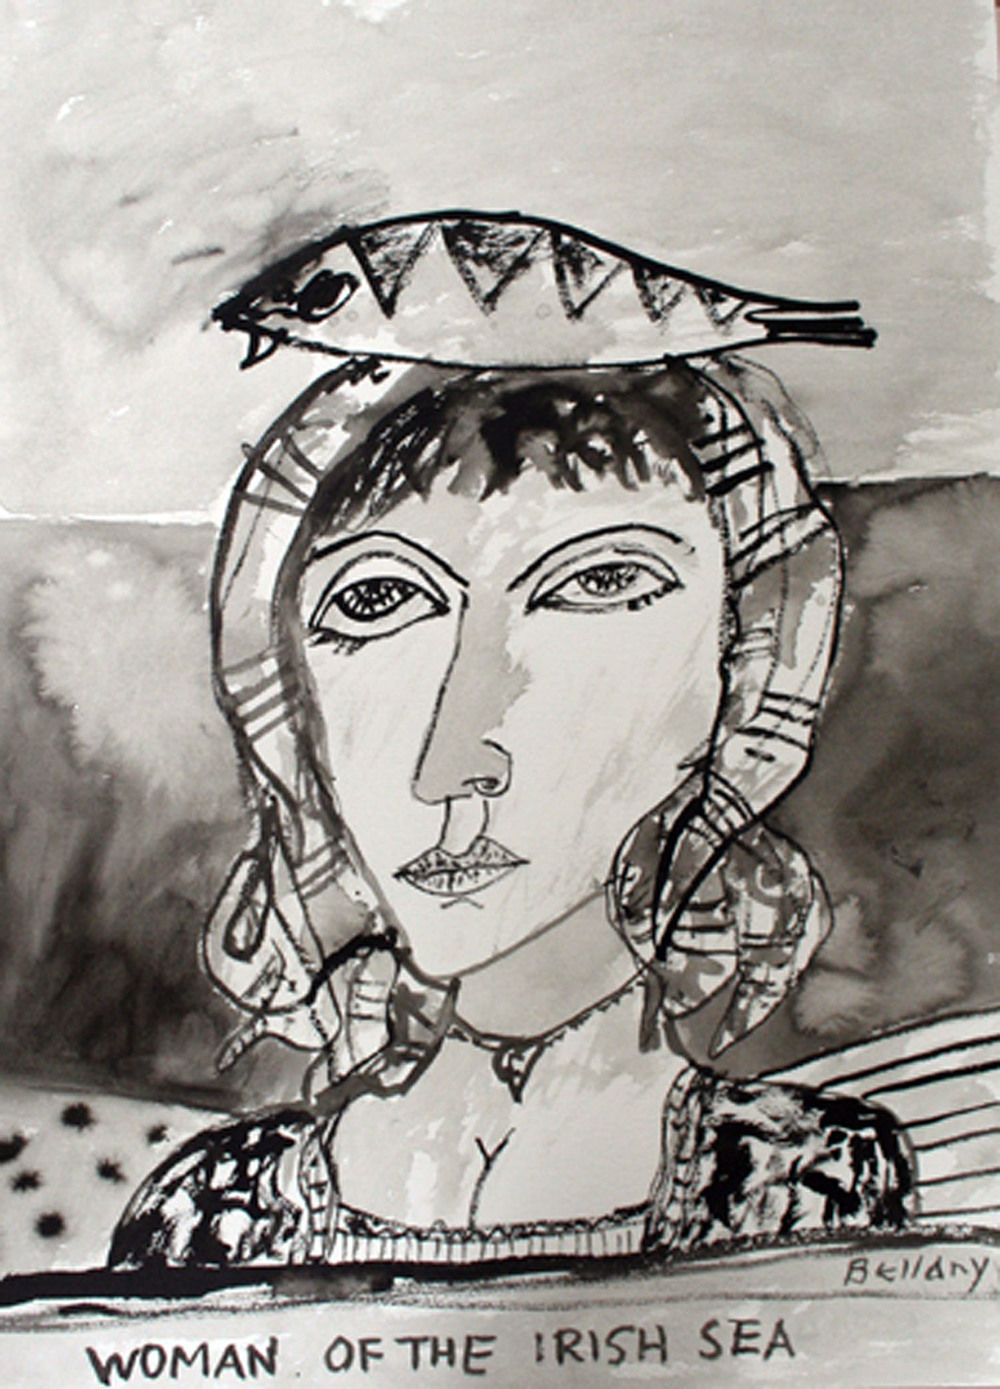 John Bellany_-_Woman of the Irish Sea_inkwash drawing_76 x 56cm.jpg